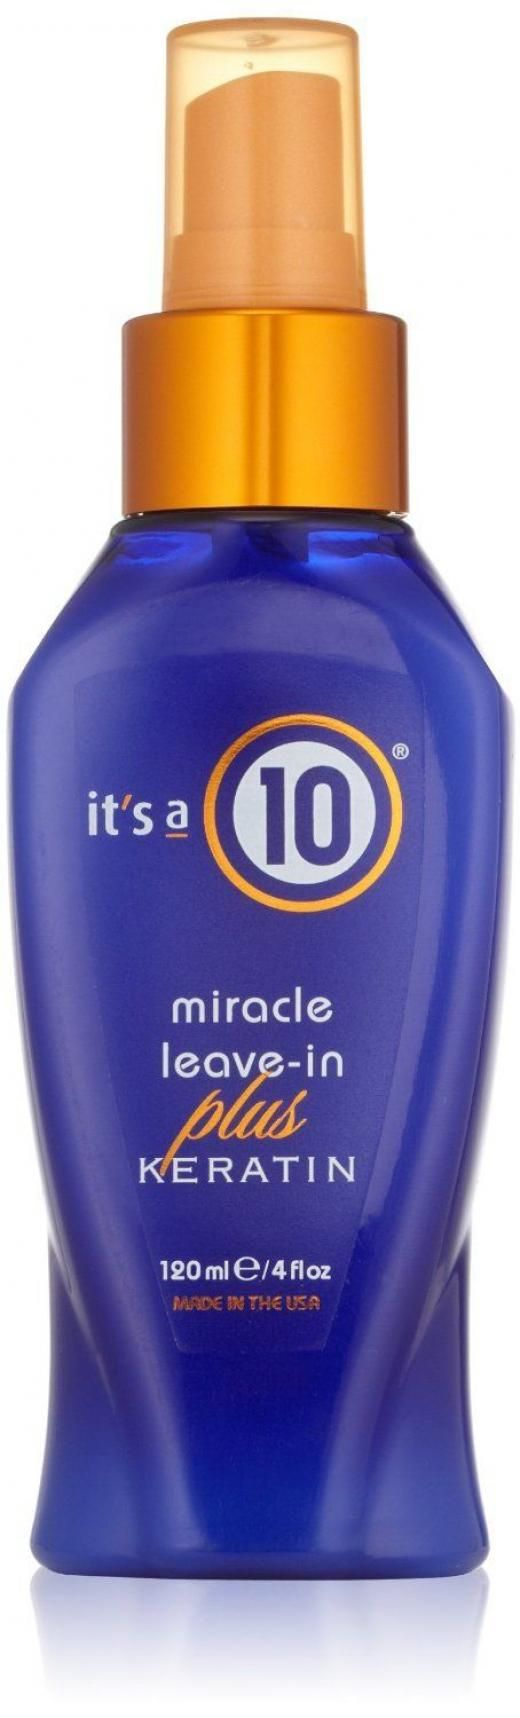 It's A 10 Its By Miracle Leave-in Plus + Keratin 4oz All Hair Unisex 4oz Maintenance Of Straightening Treatments Styling & Manageability Perfect For Types Replaces Lost Protein Protects The